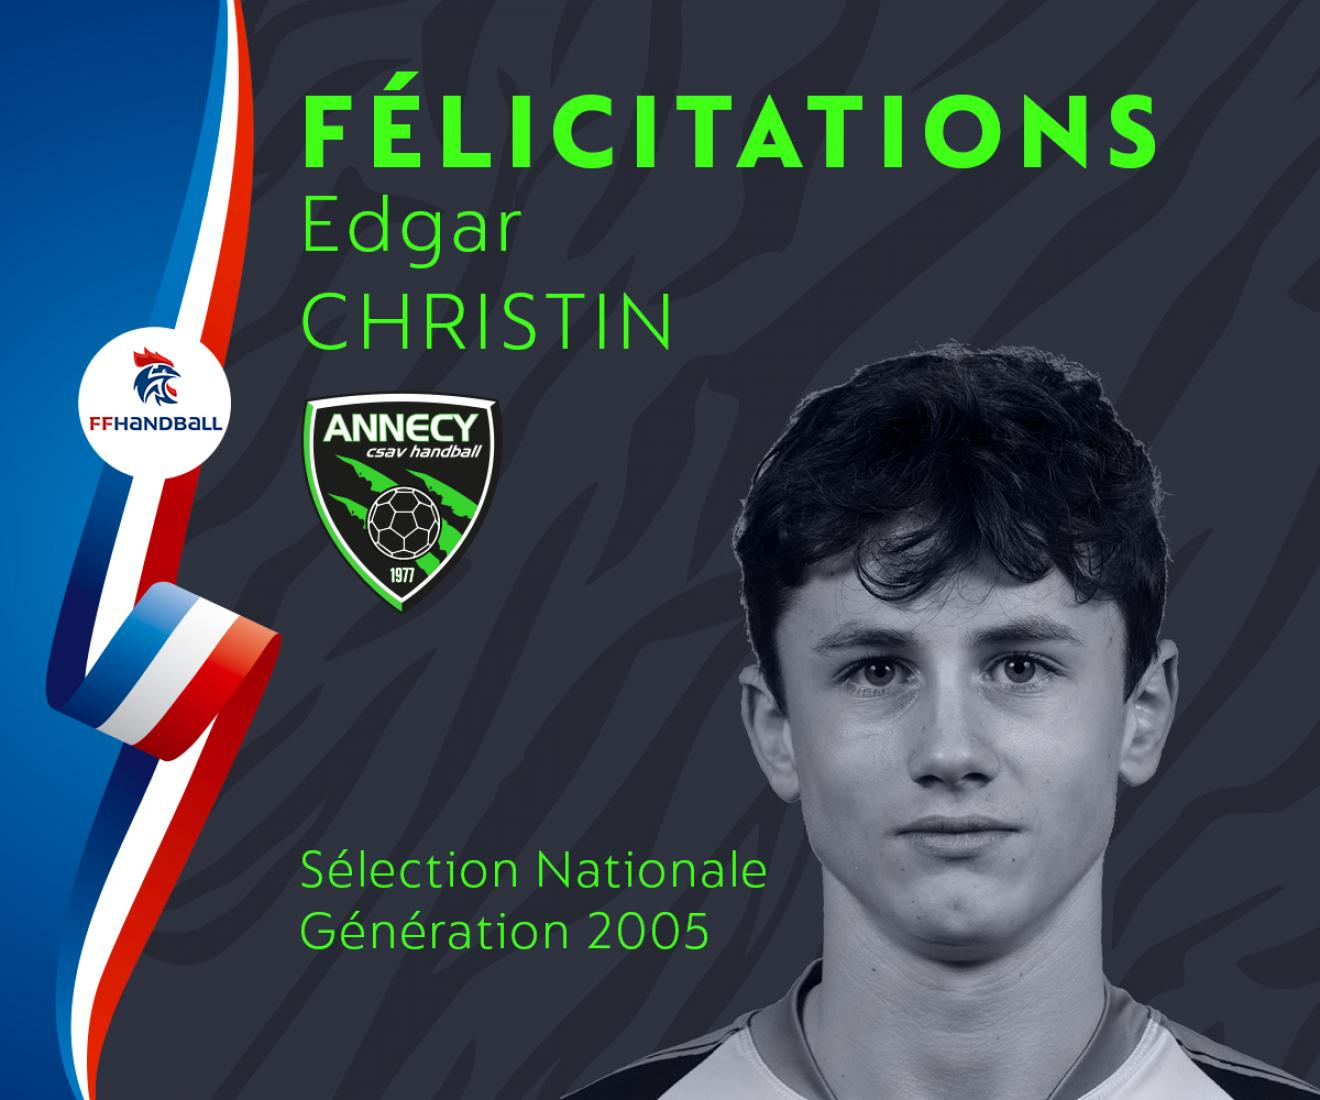 Sélection Nationale - Edgar Christin